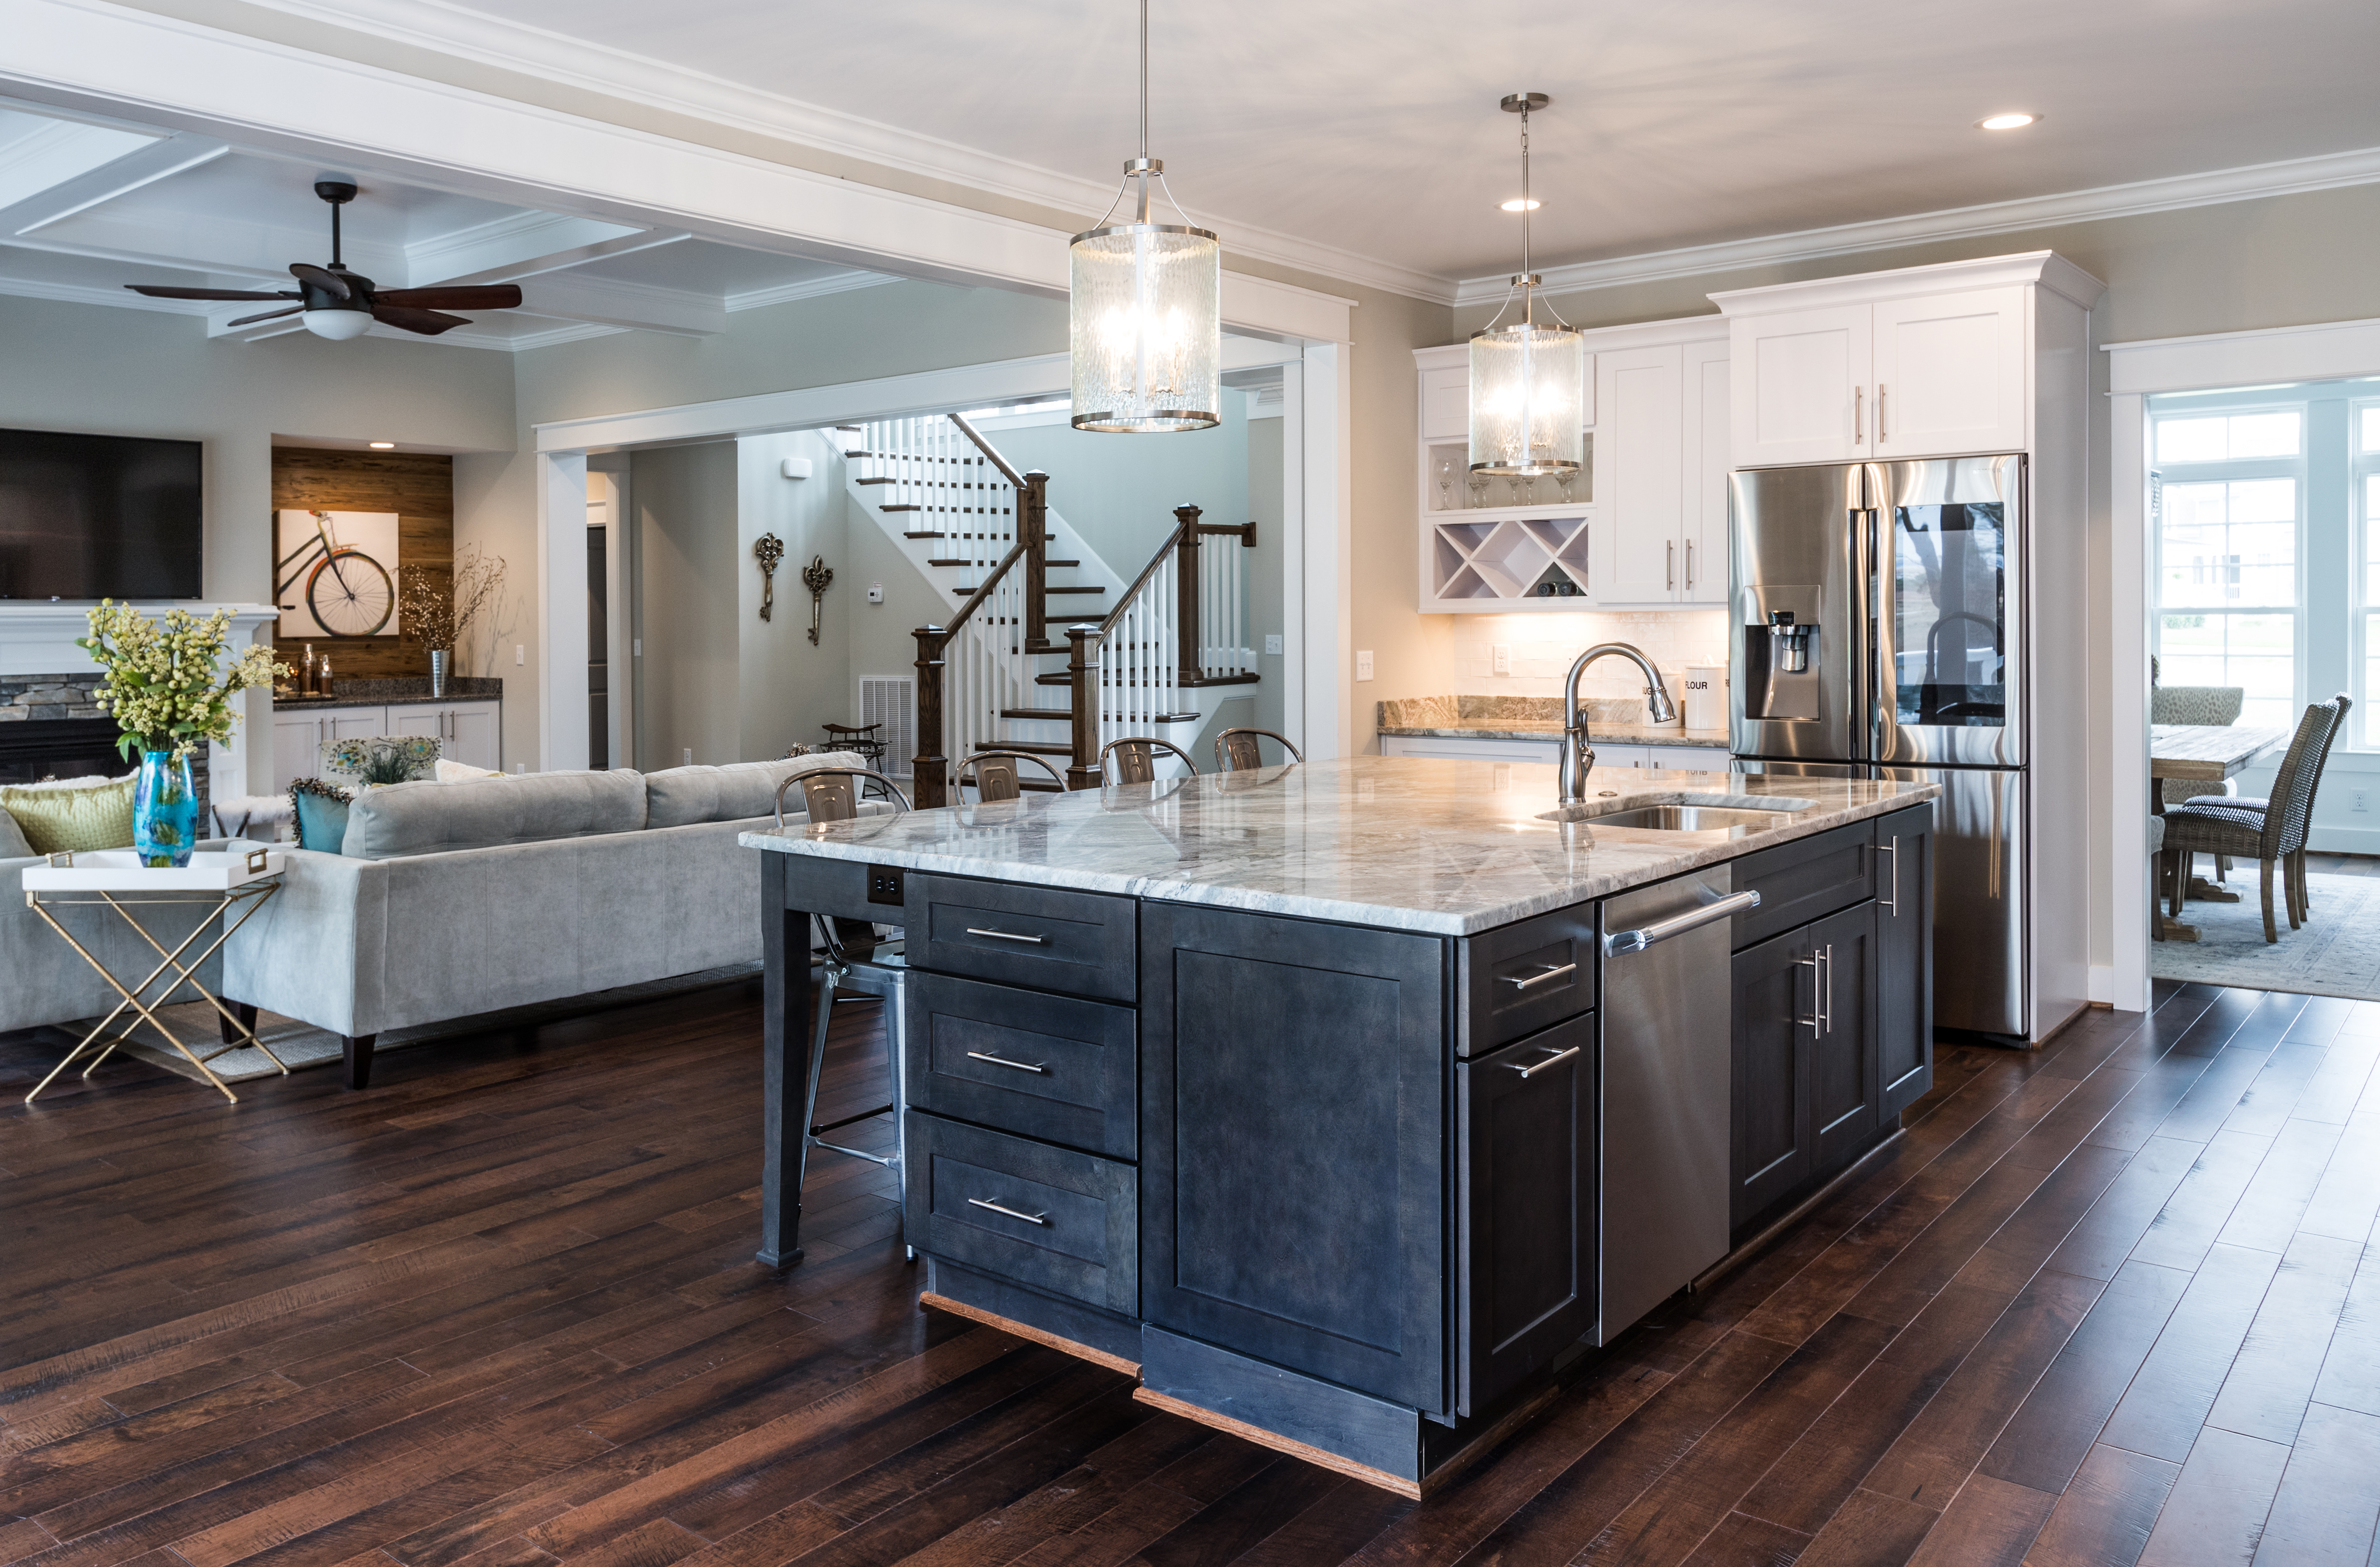 Want To Make Living In Your Home Easier And Match Cur Lifestyle Here Is A List Of 7 Features That They Are Including Often Our New Homes